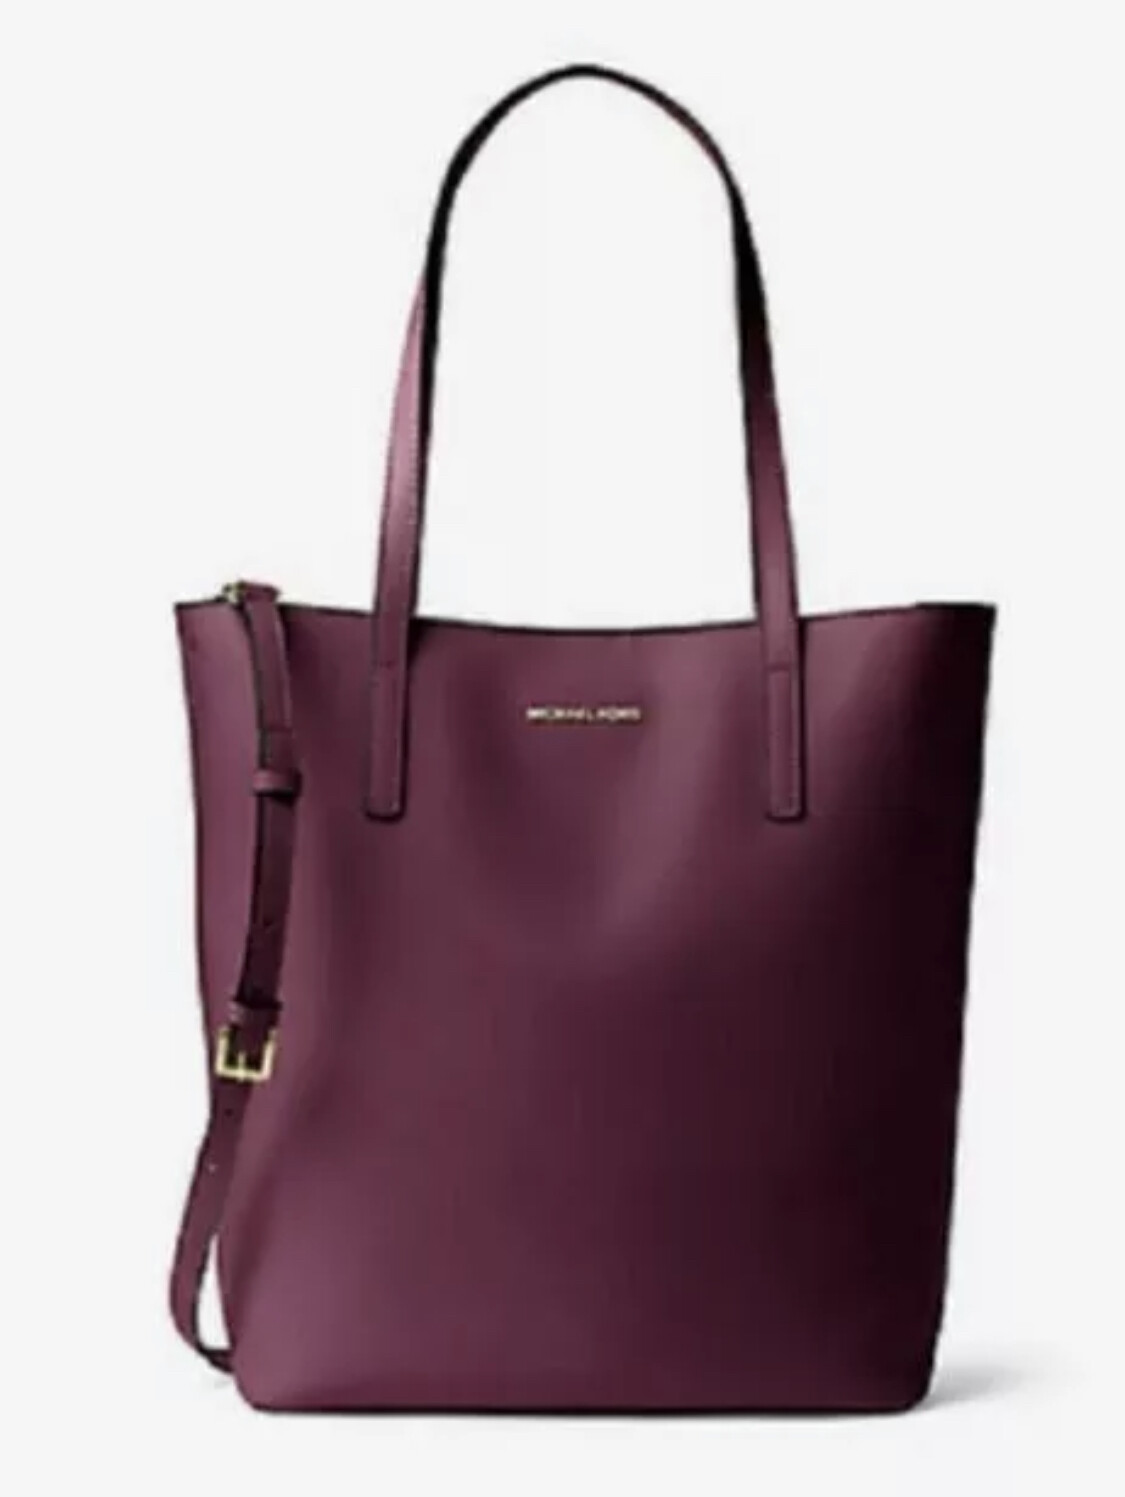 """New MICHAEL KORS """"Ermy"""" Leather Tote in Plum with Shoulder strap $298"""